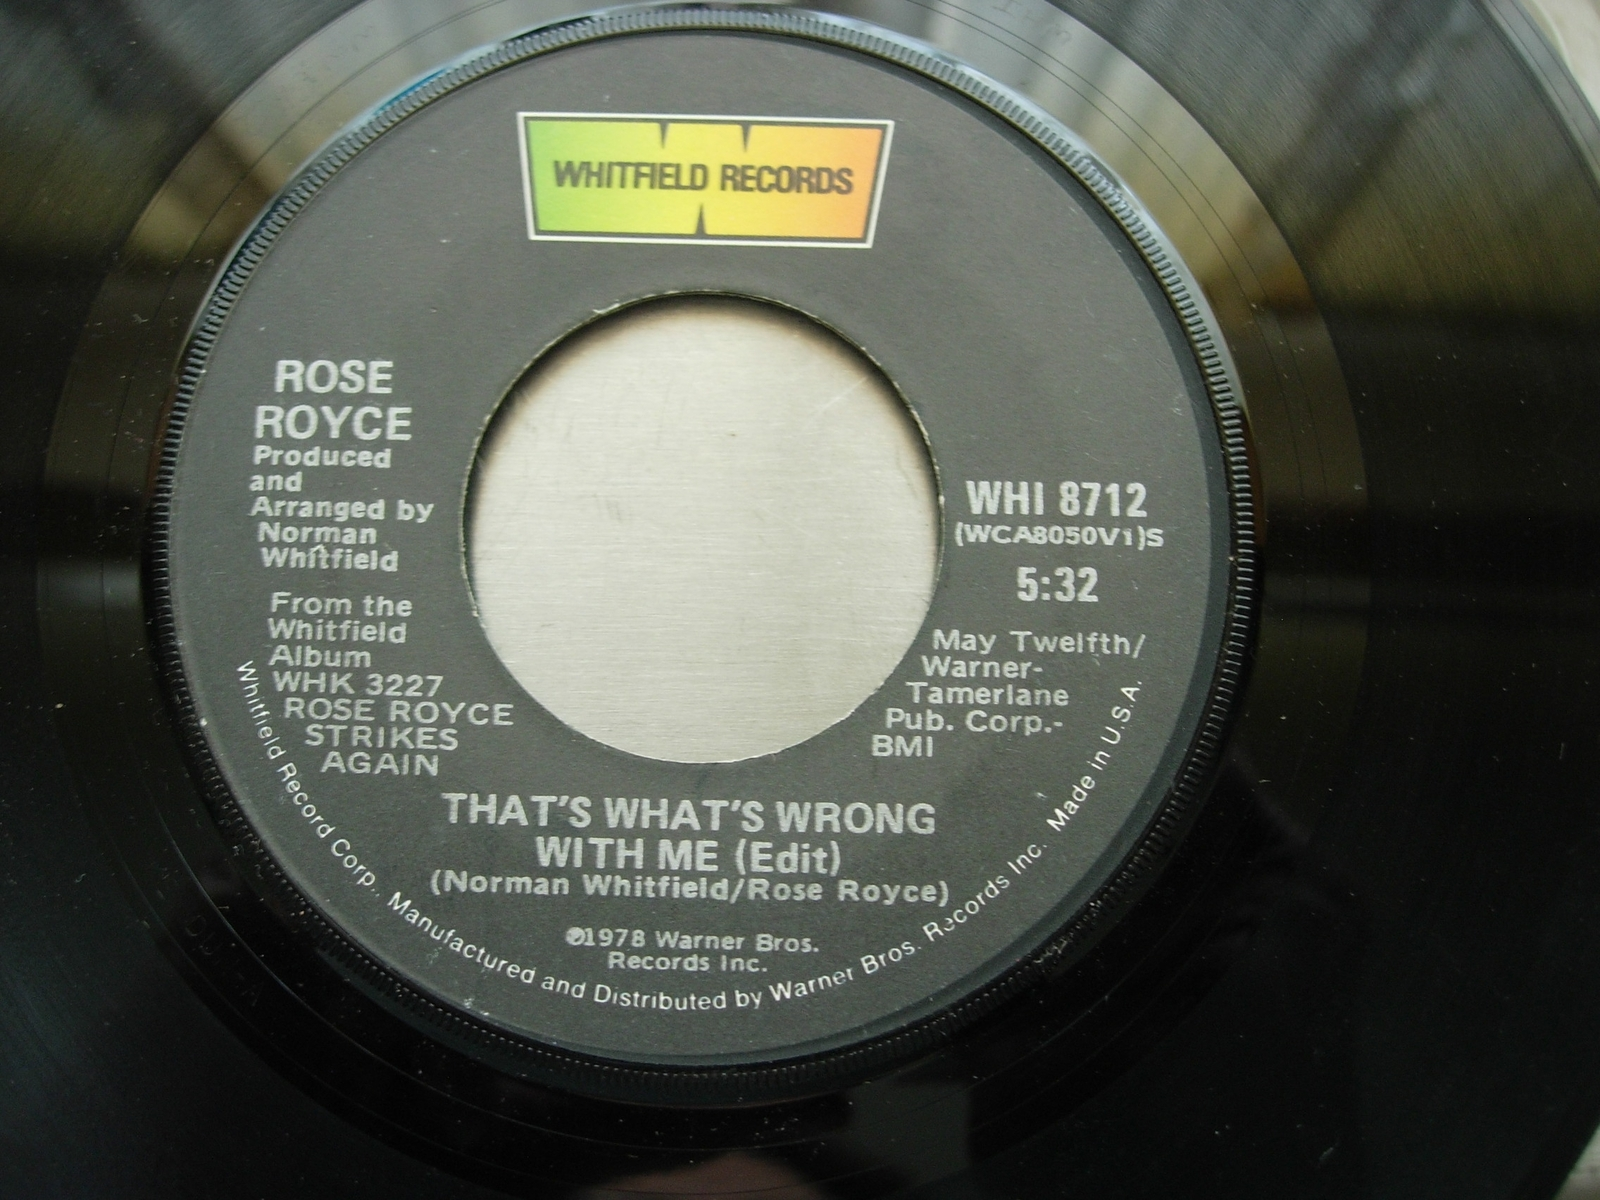 Rose Royce - Love Don't Live Here Anymore / That's What Wrong With Me - WHI 8712